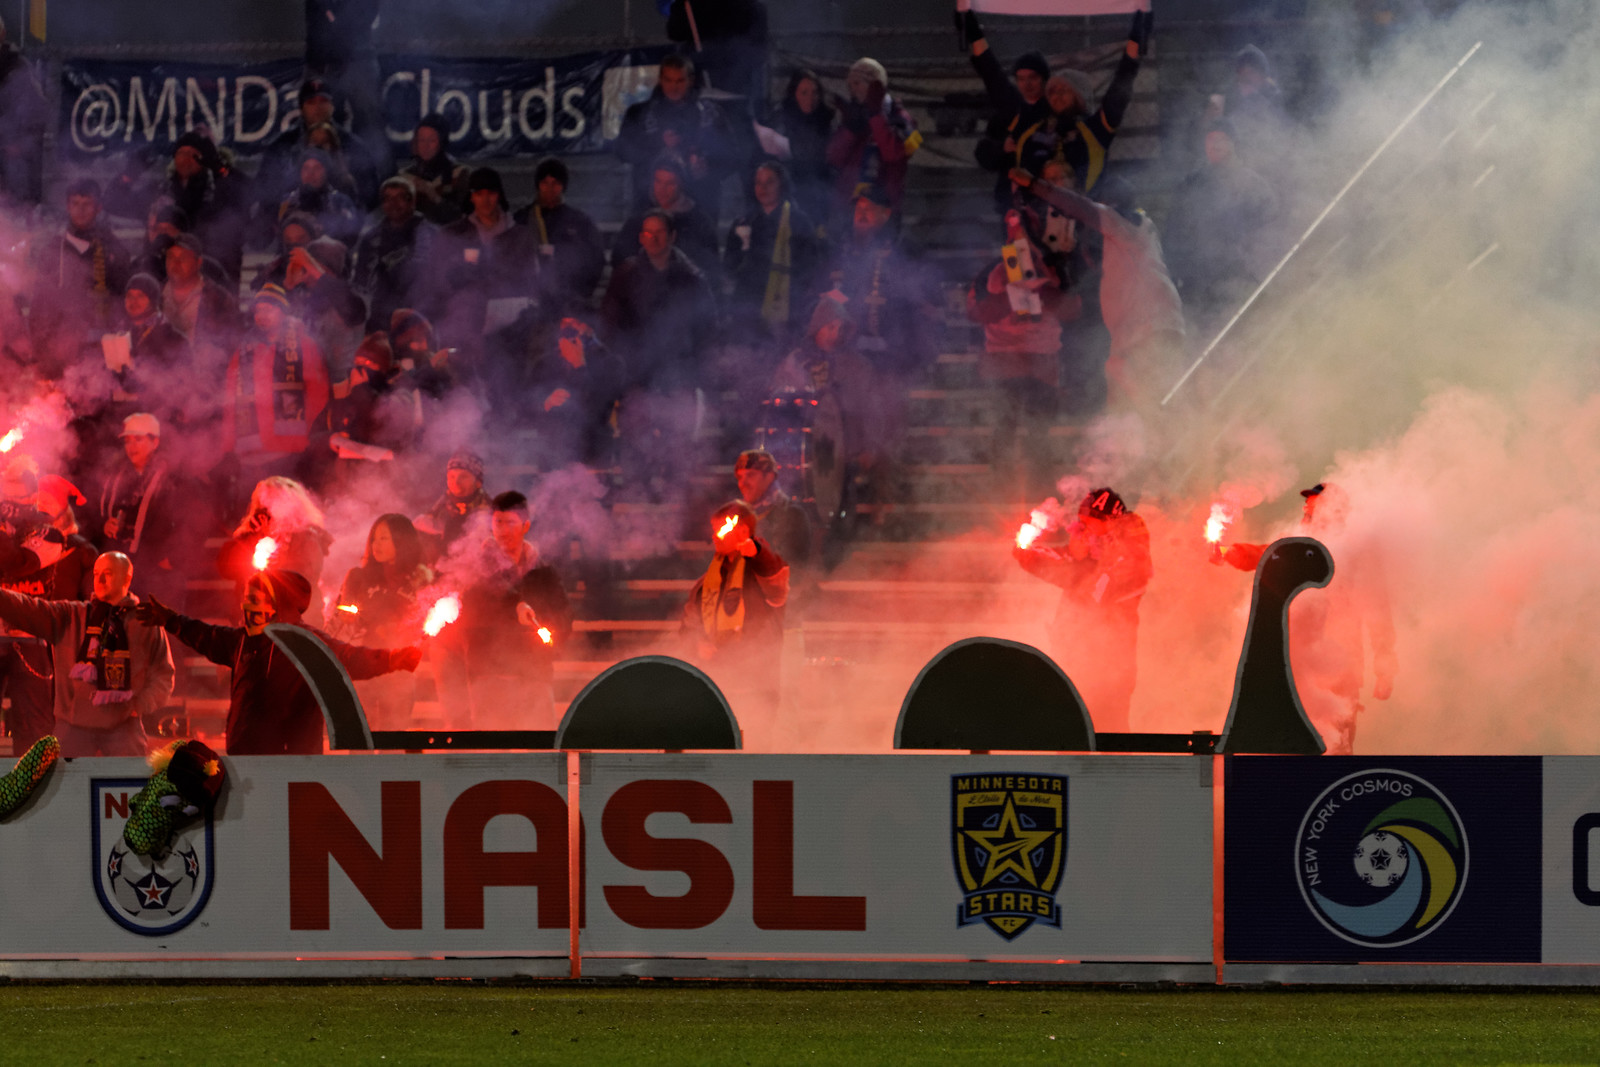 Dark Clouds with flares for tifo in 2011. Photo by Jeremy Olson.